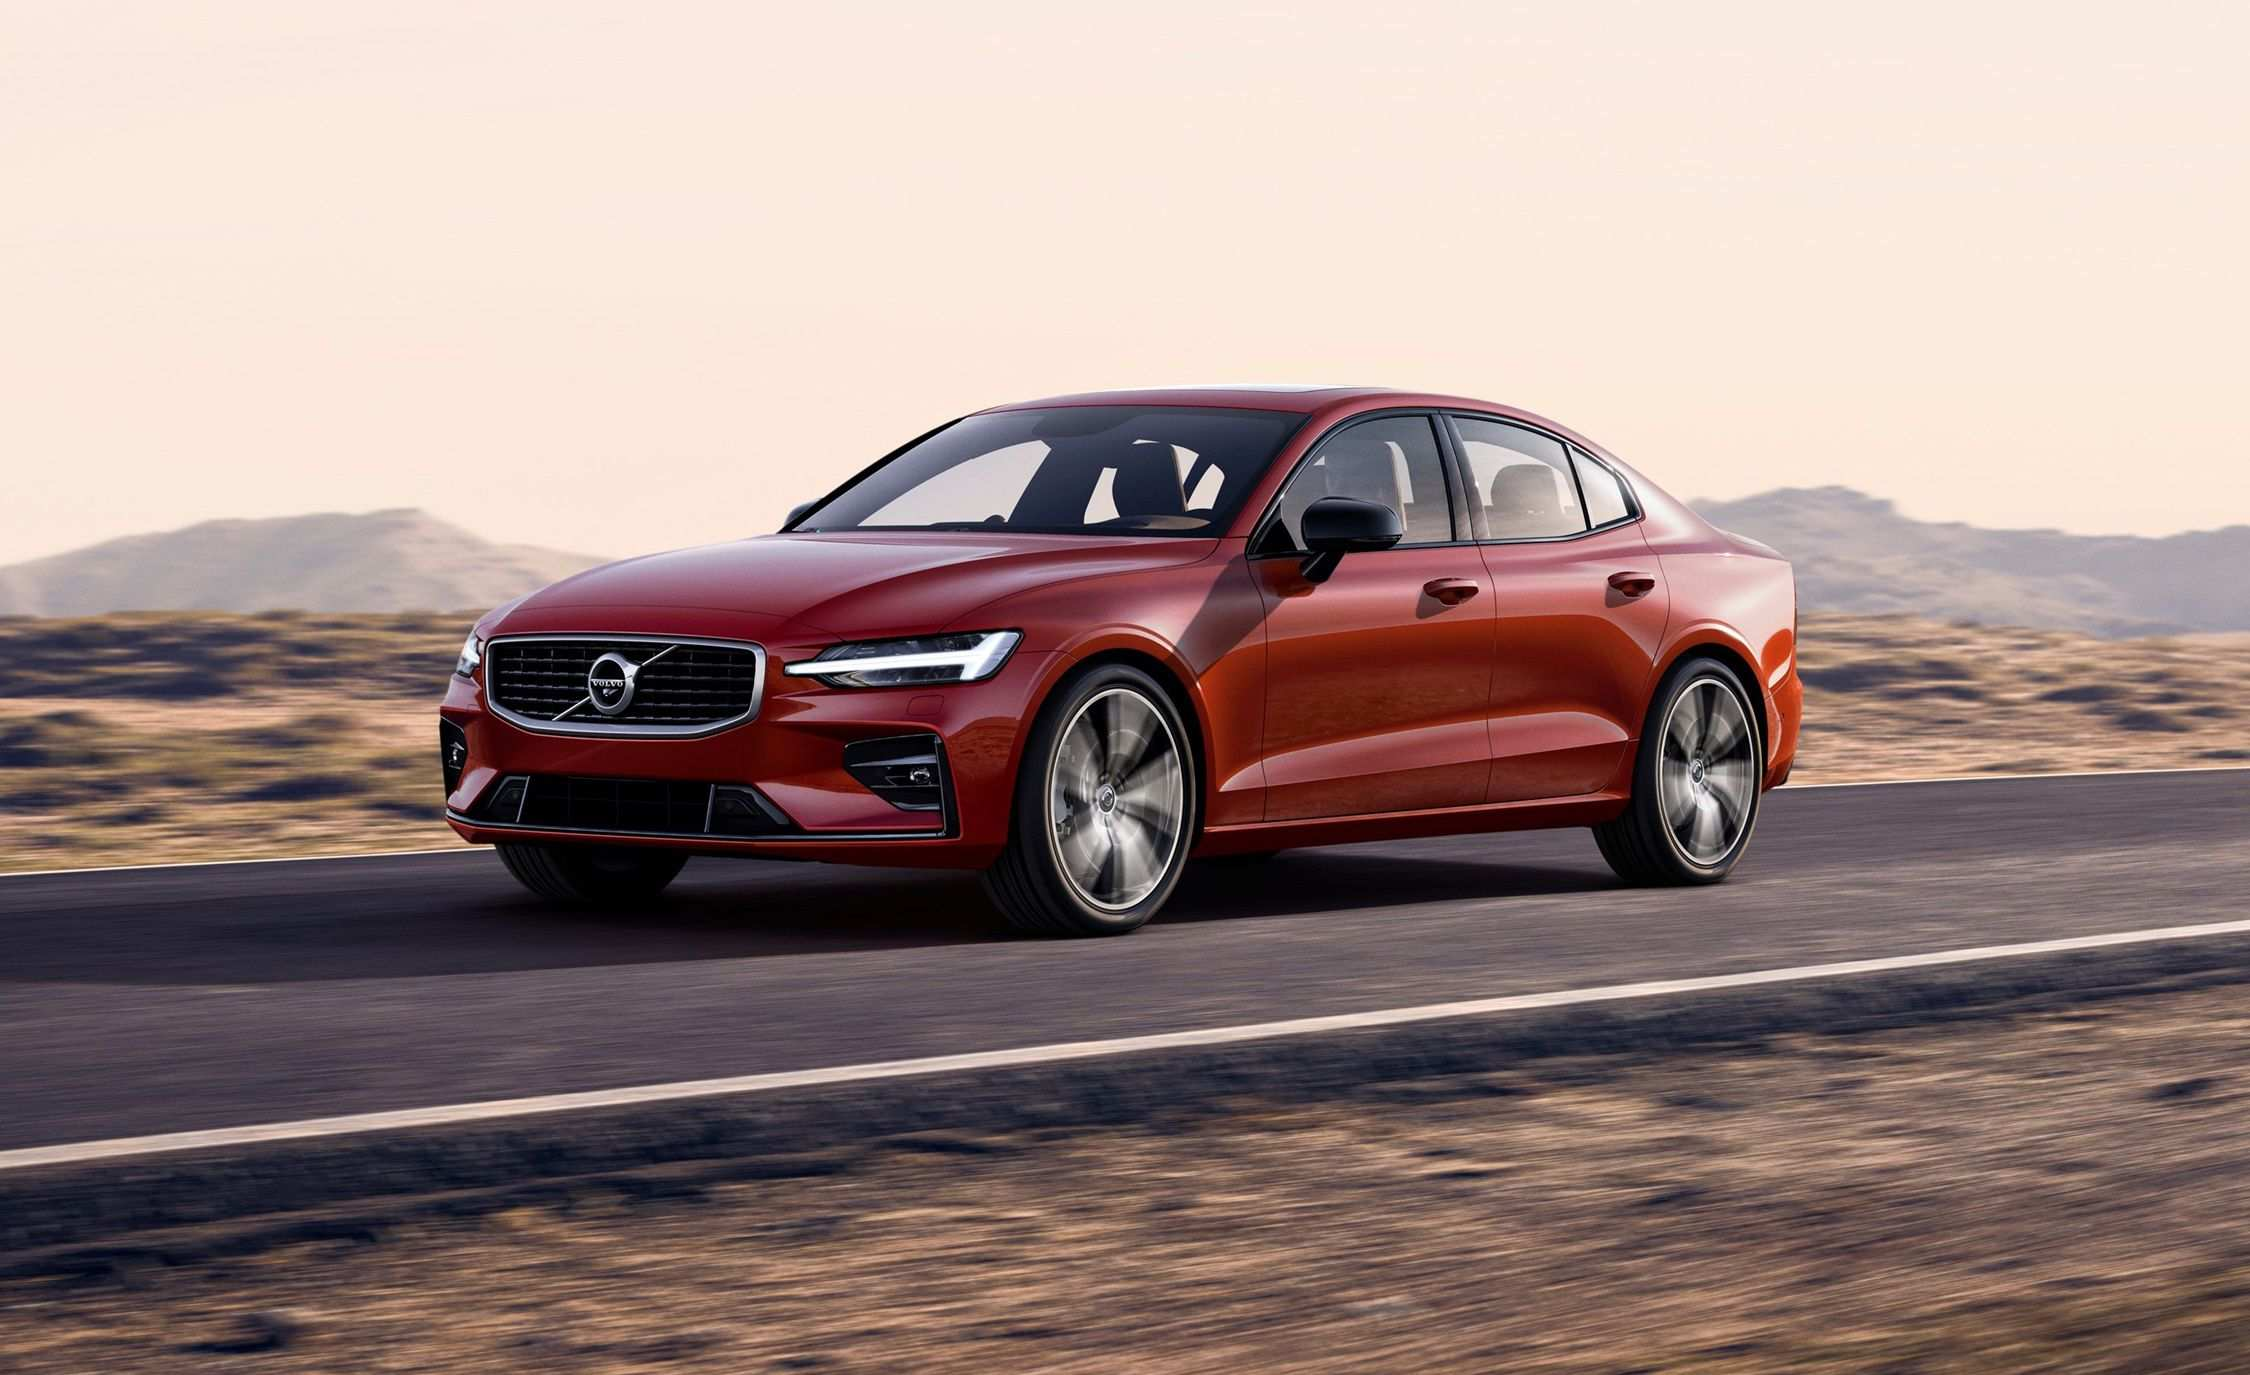 59 Gallery of 2019 Volvo S60 Redesign Release Date with 2019 Volvo S60 Redesign